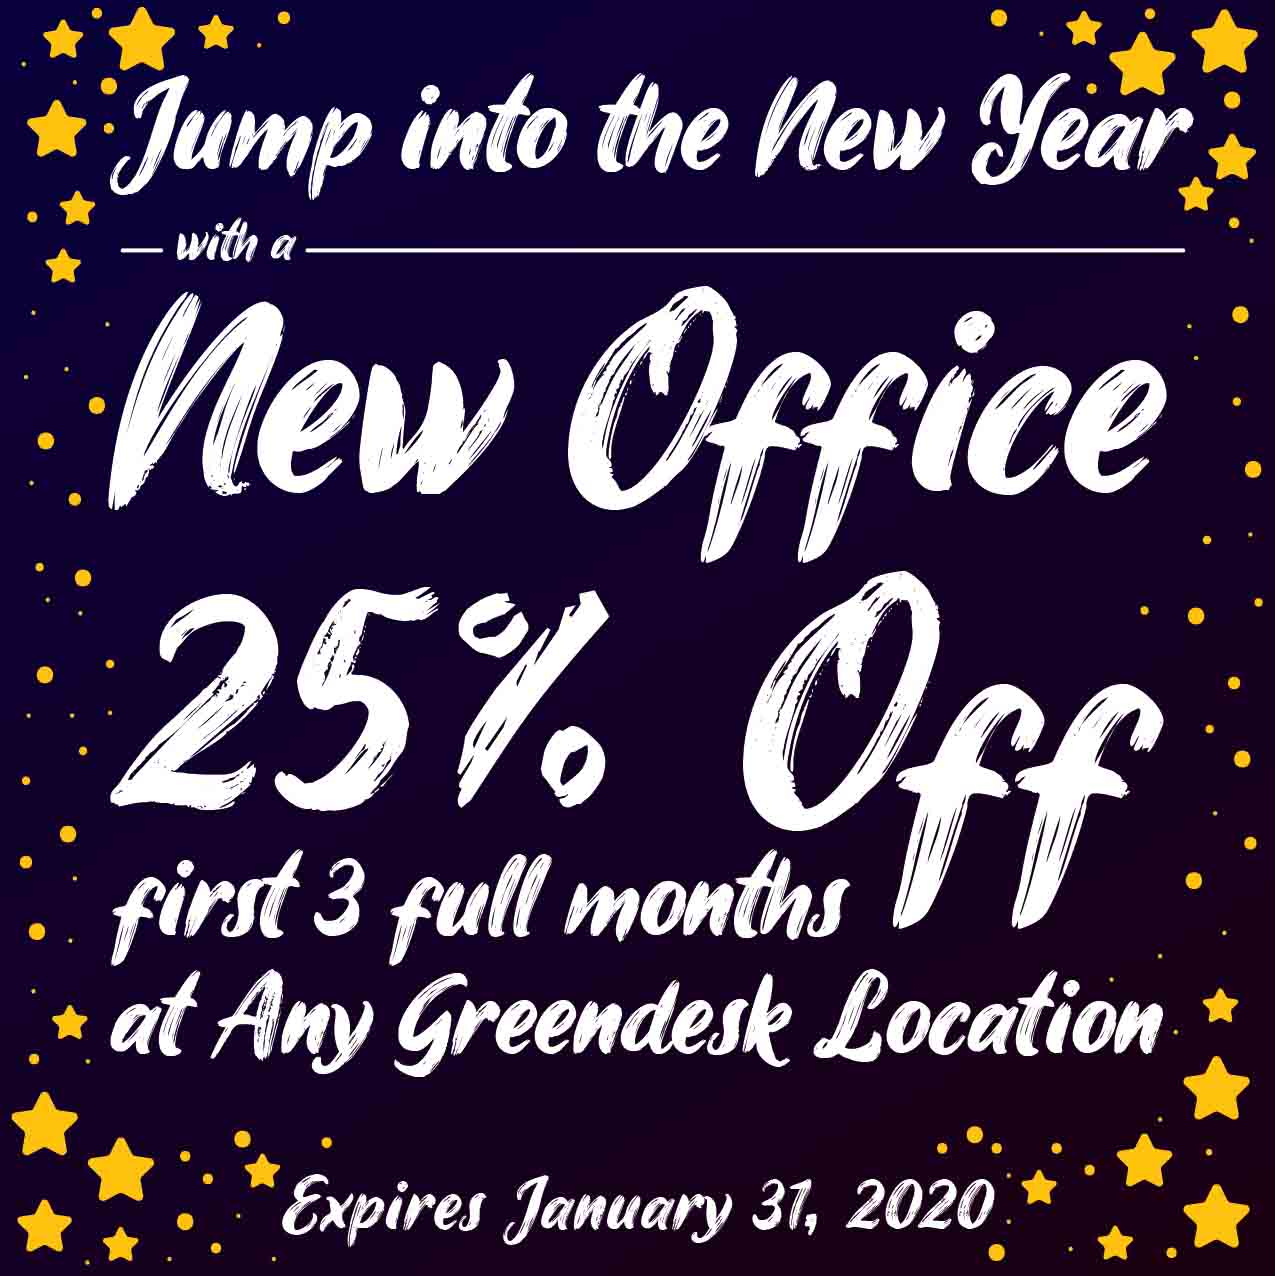 Jump into the New Year with a New Office - 25% Off Your first three months at any Greendesk Location Coupon. Expires January 31, 2020